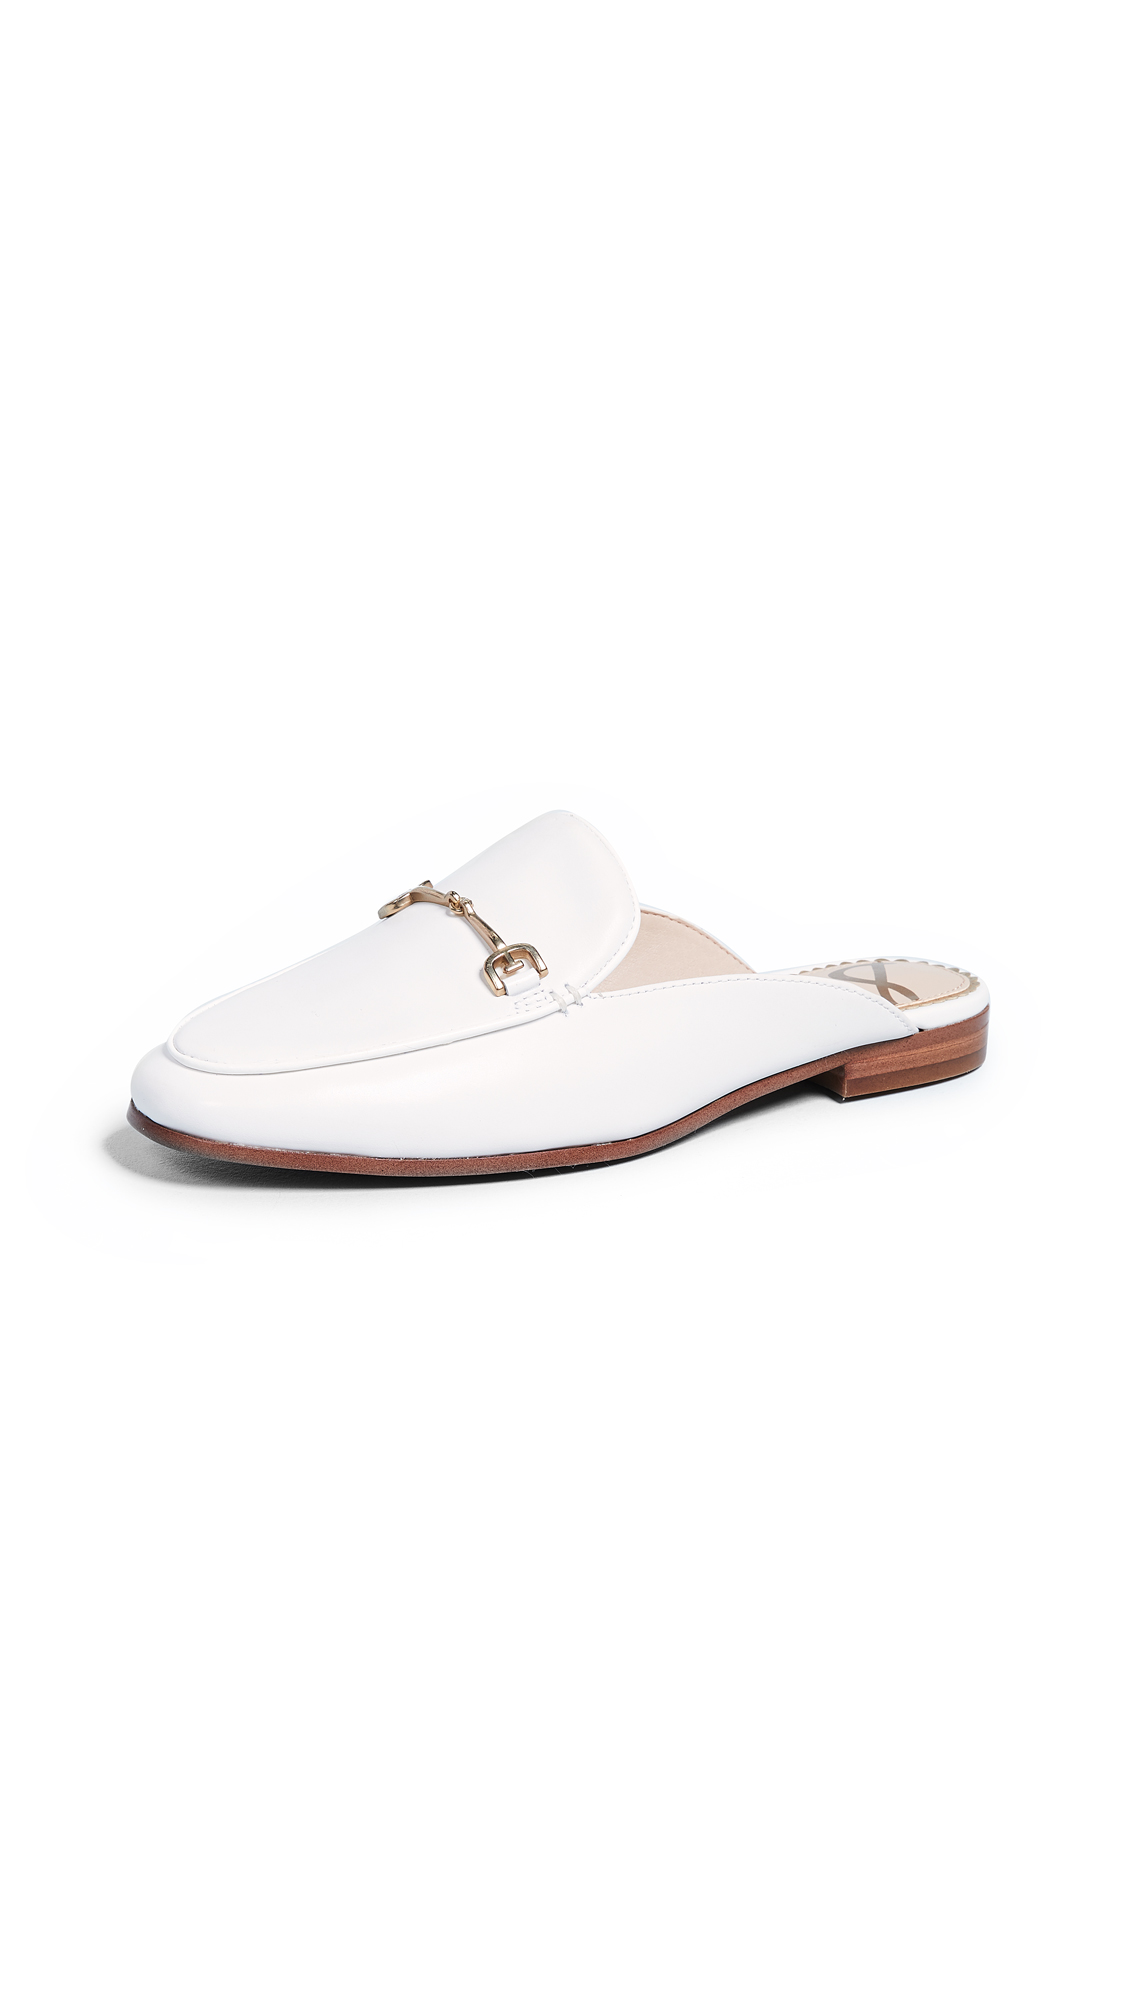 Sam Edelman Linnie Flat Mules - Bright White